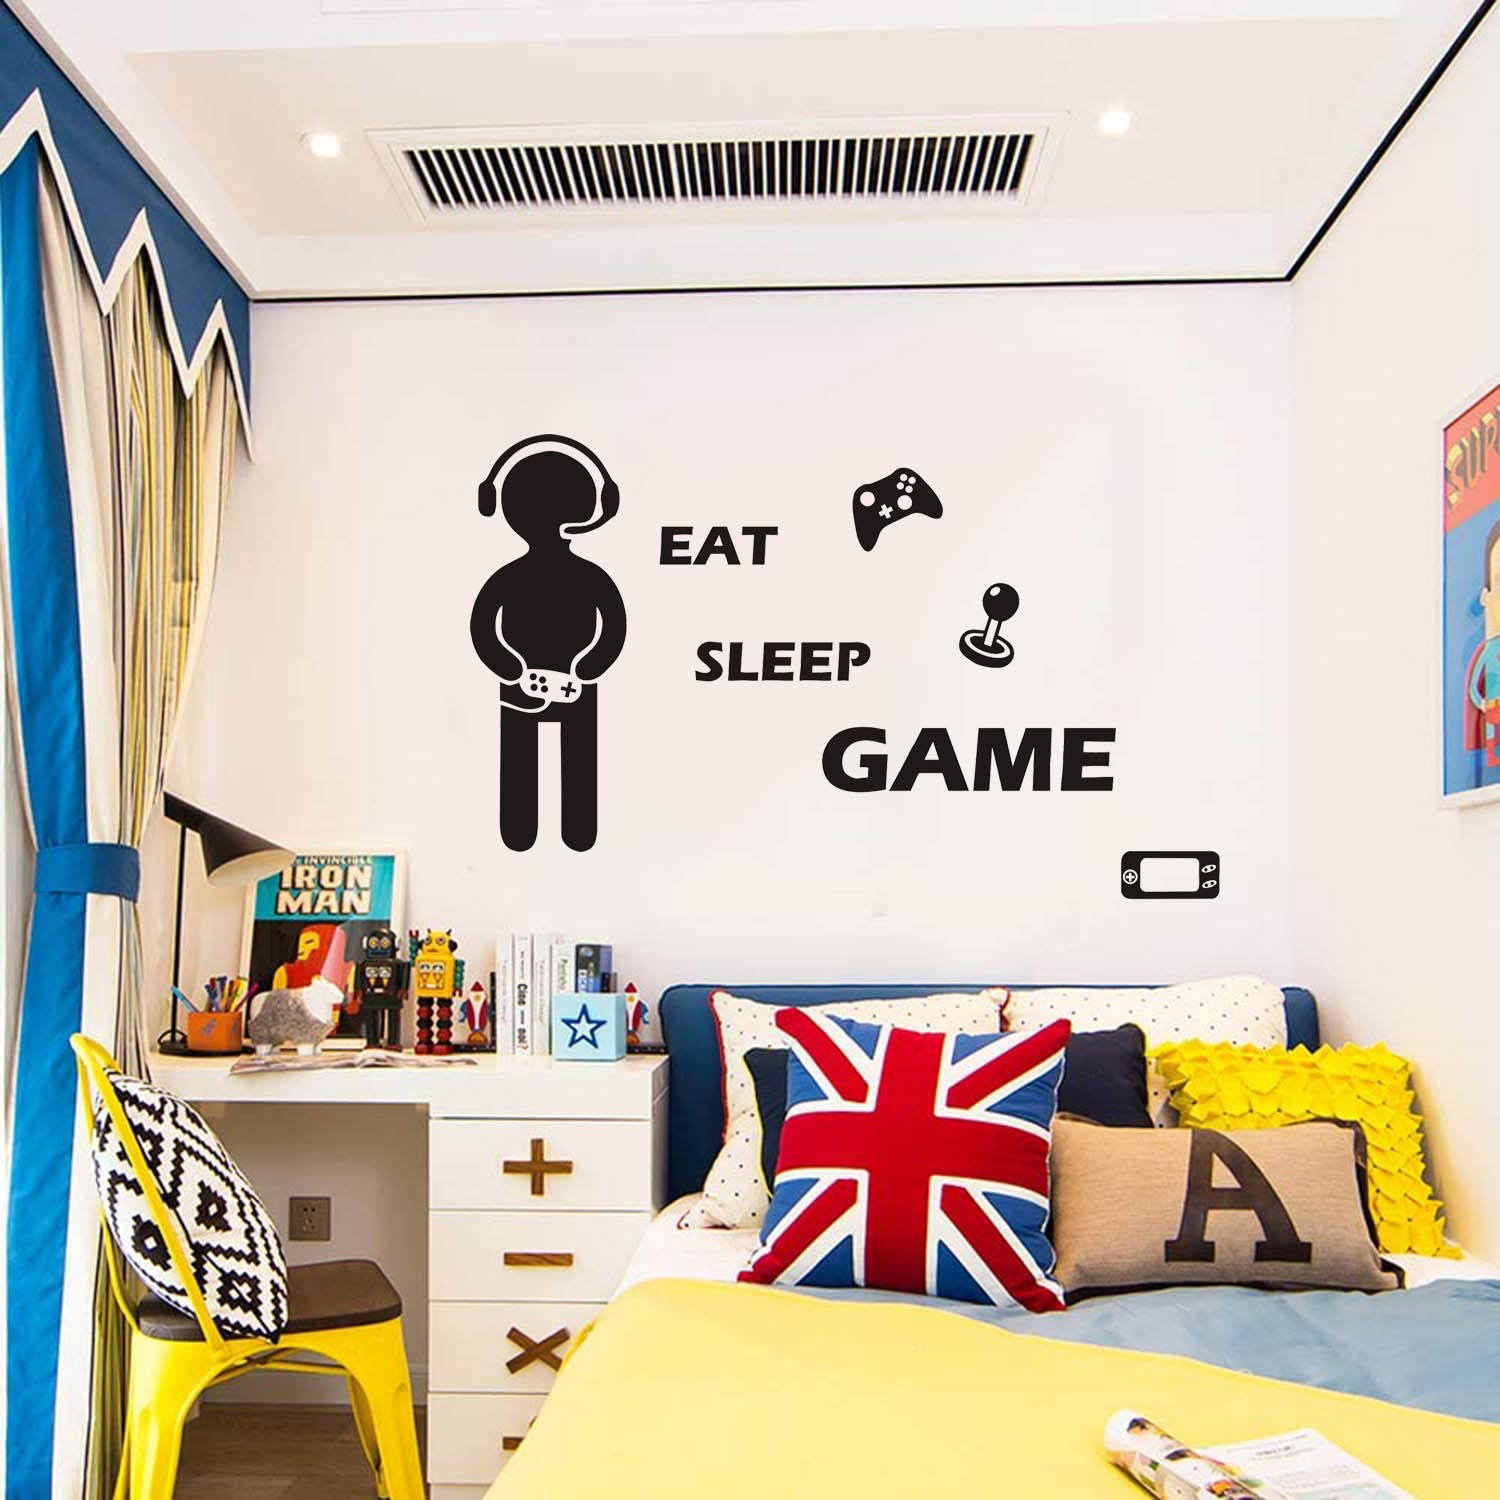 Game Wall Decal Wall Sticker Gamer Poster with Eat Sleep Game Quotes Wall Stickers Video Game Wall Decor Game Wall Decals Kids Boys Teens Game Lover Room Decoration